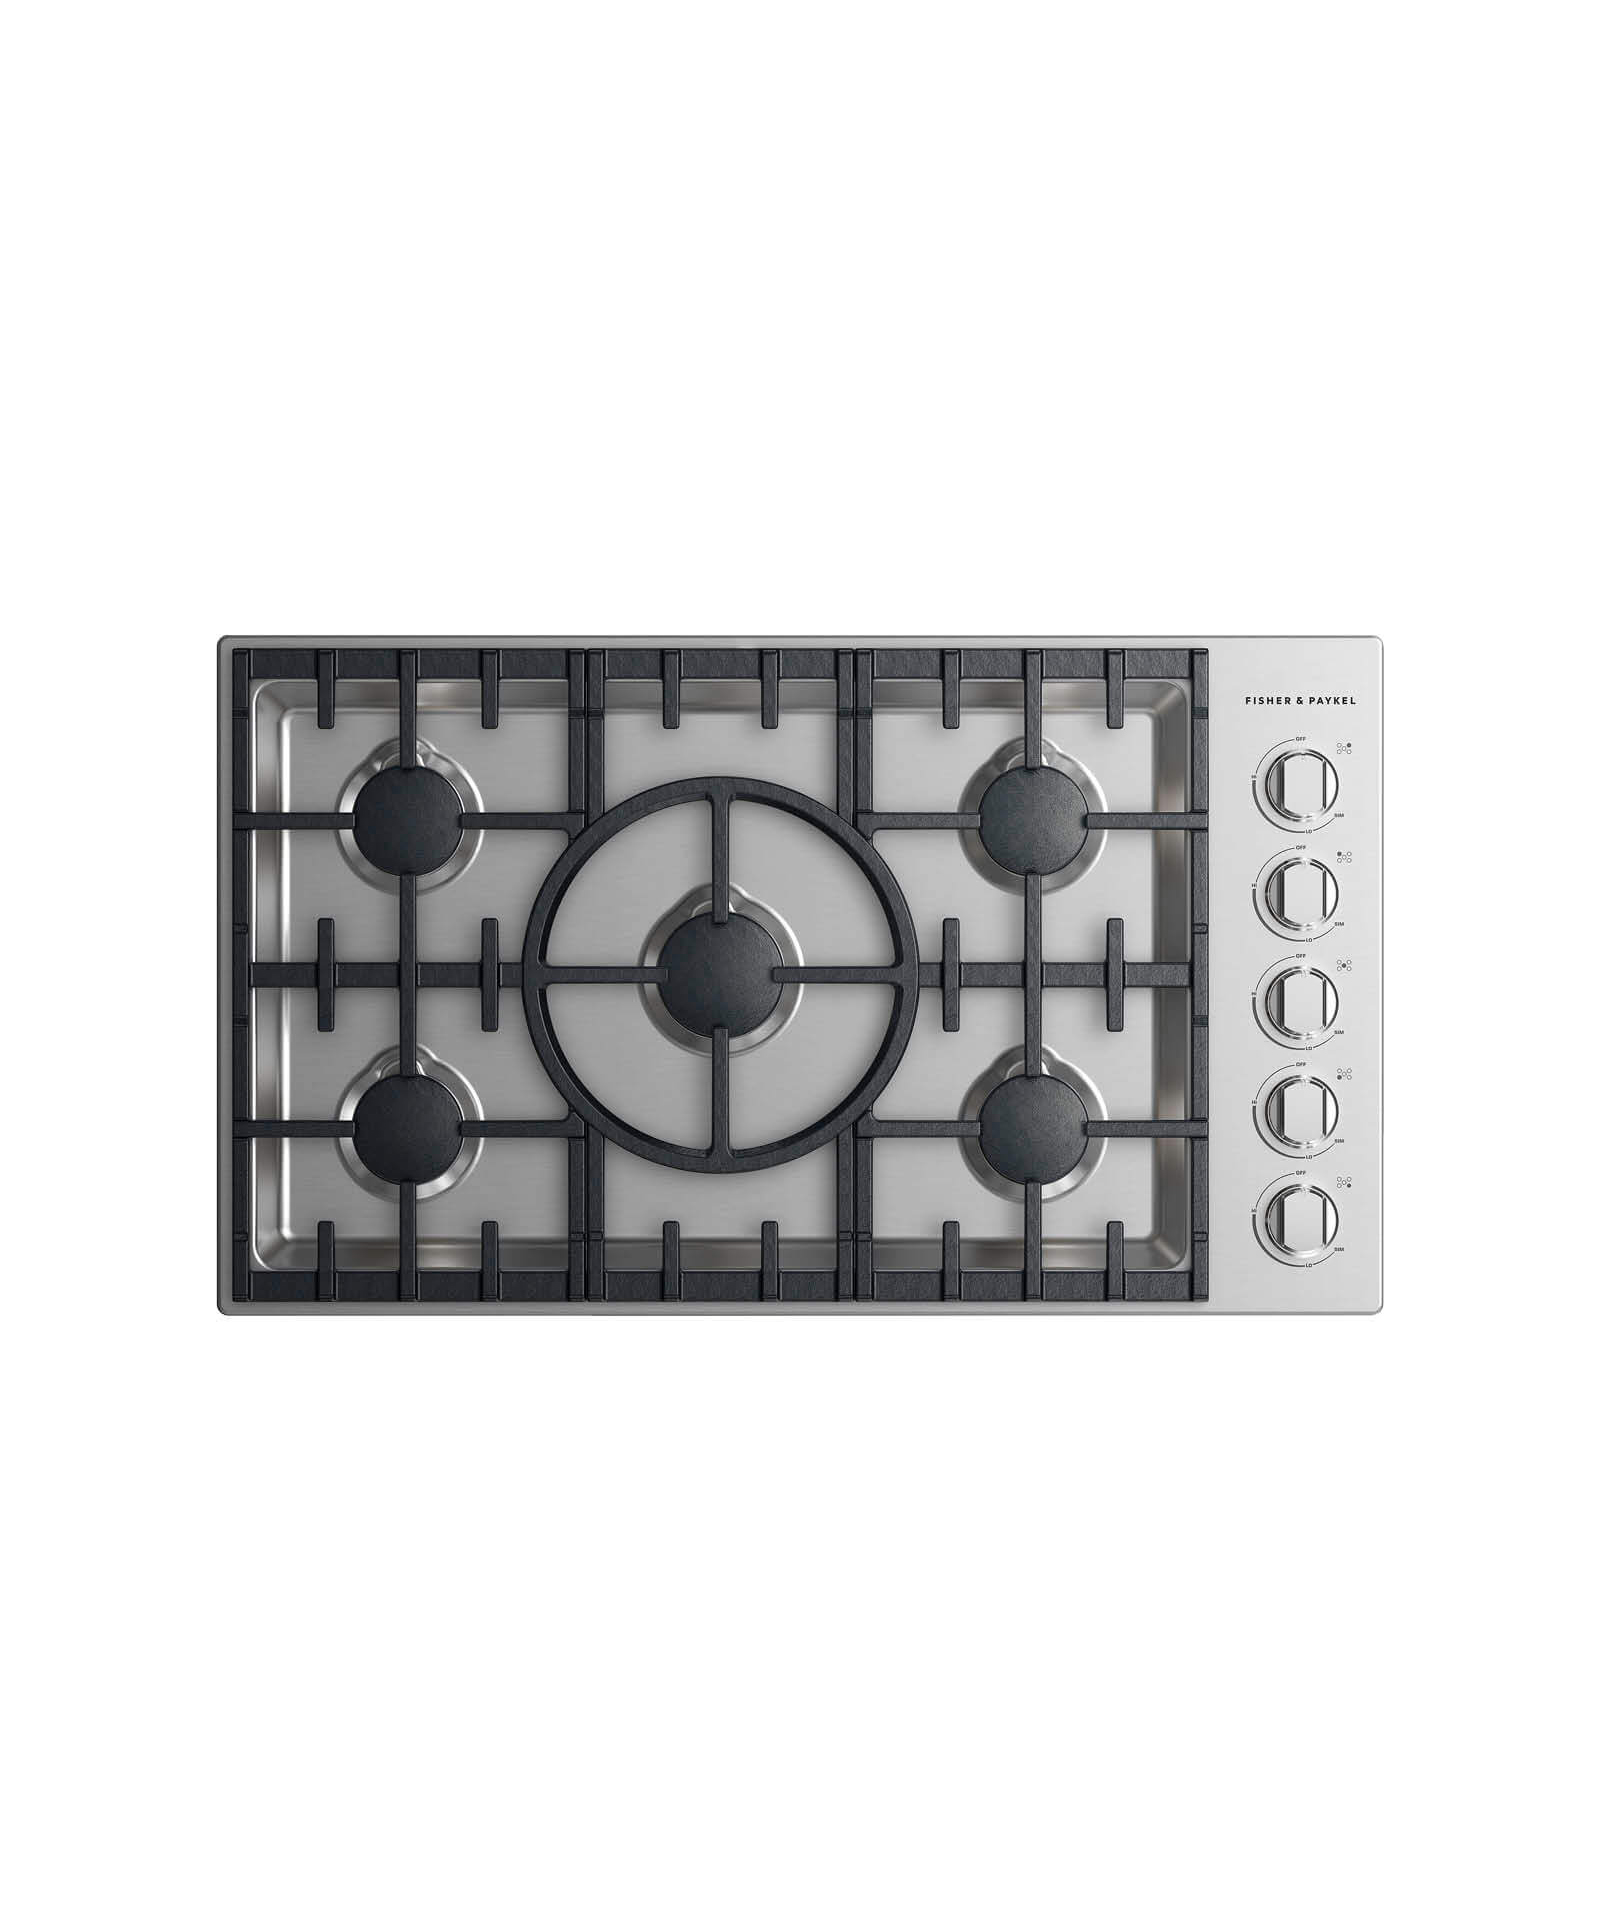 "Fisher and Paykel Gas Cooktop 36"", 5 burner (LPG)"